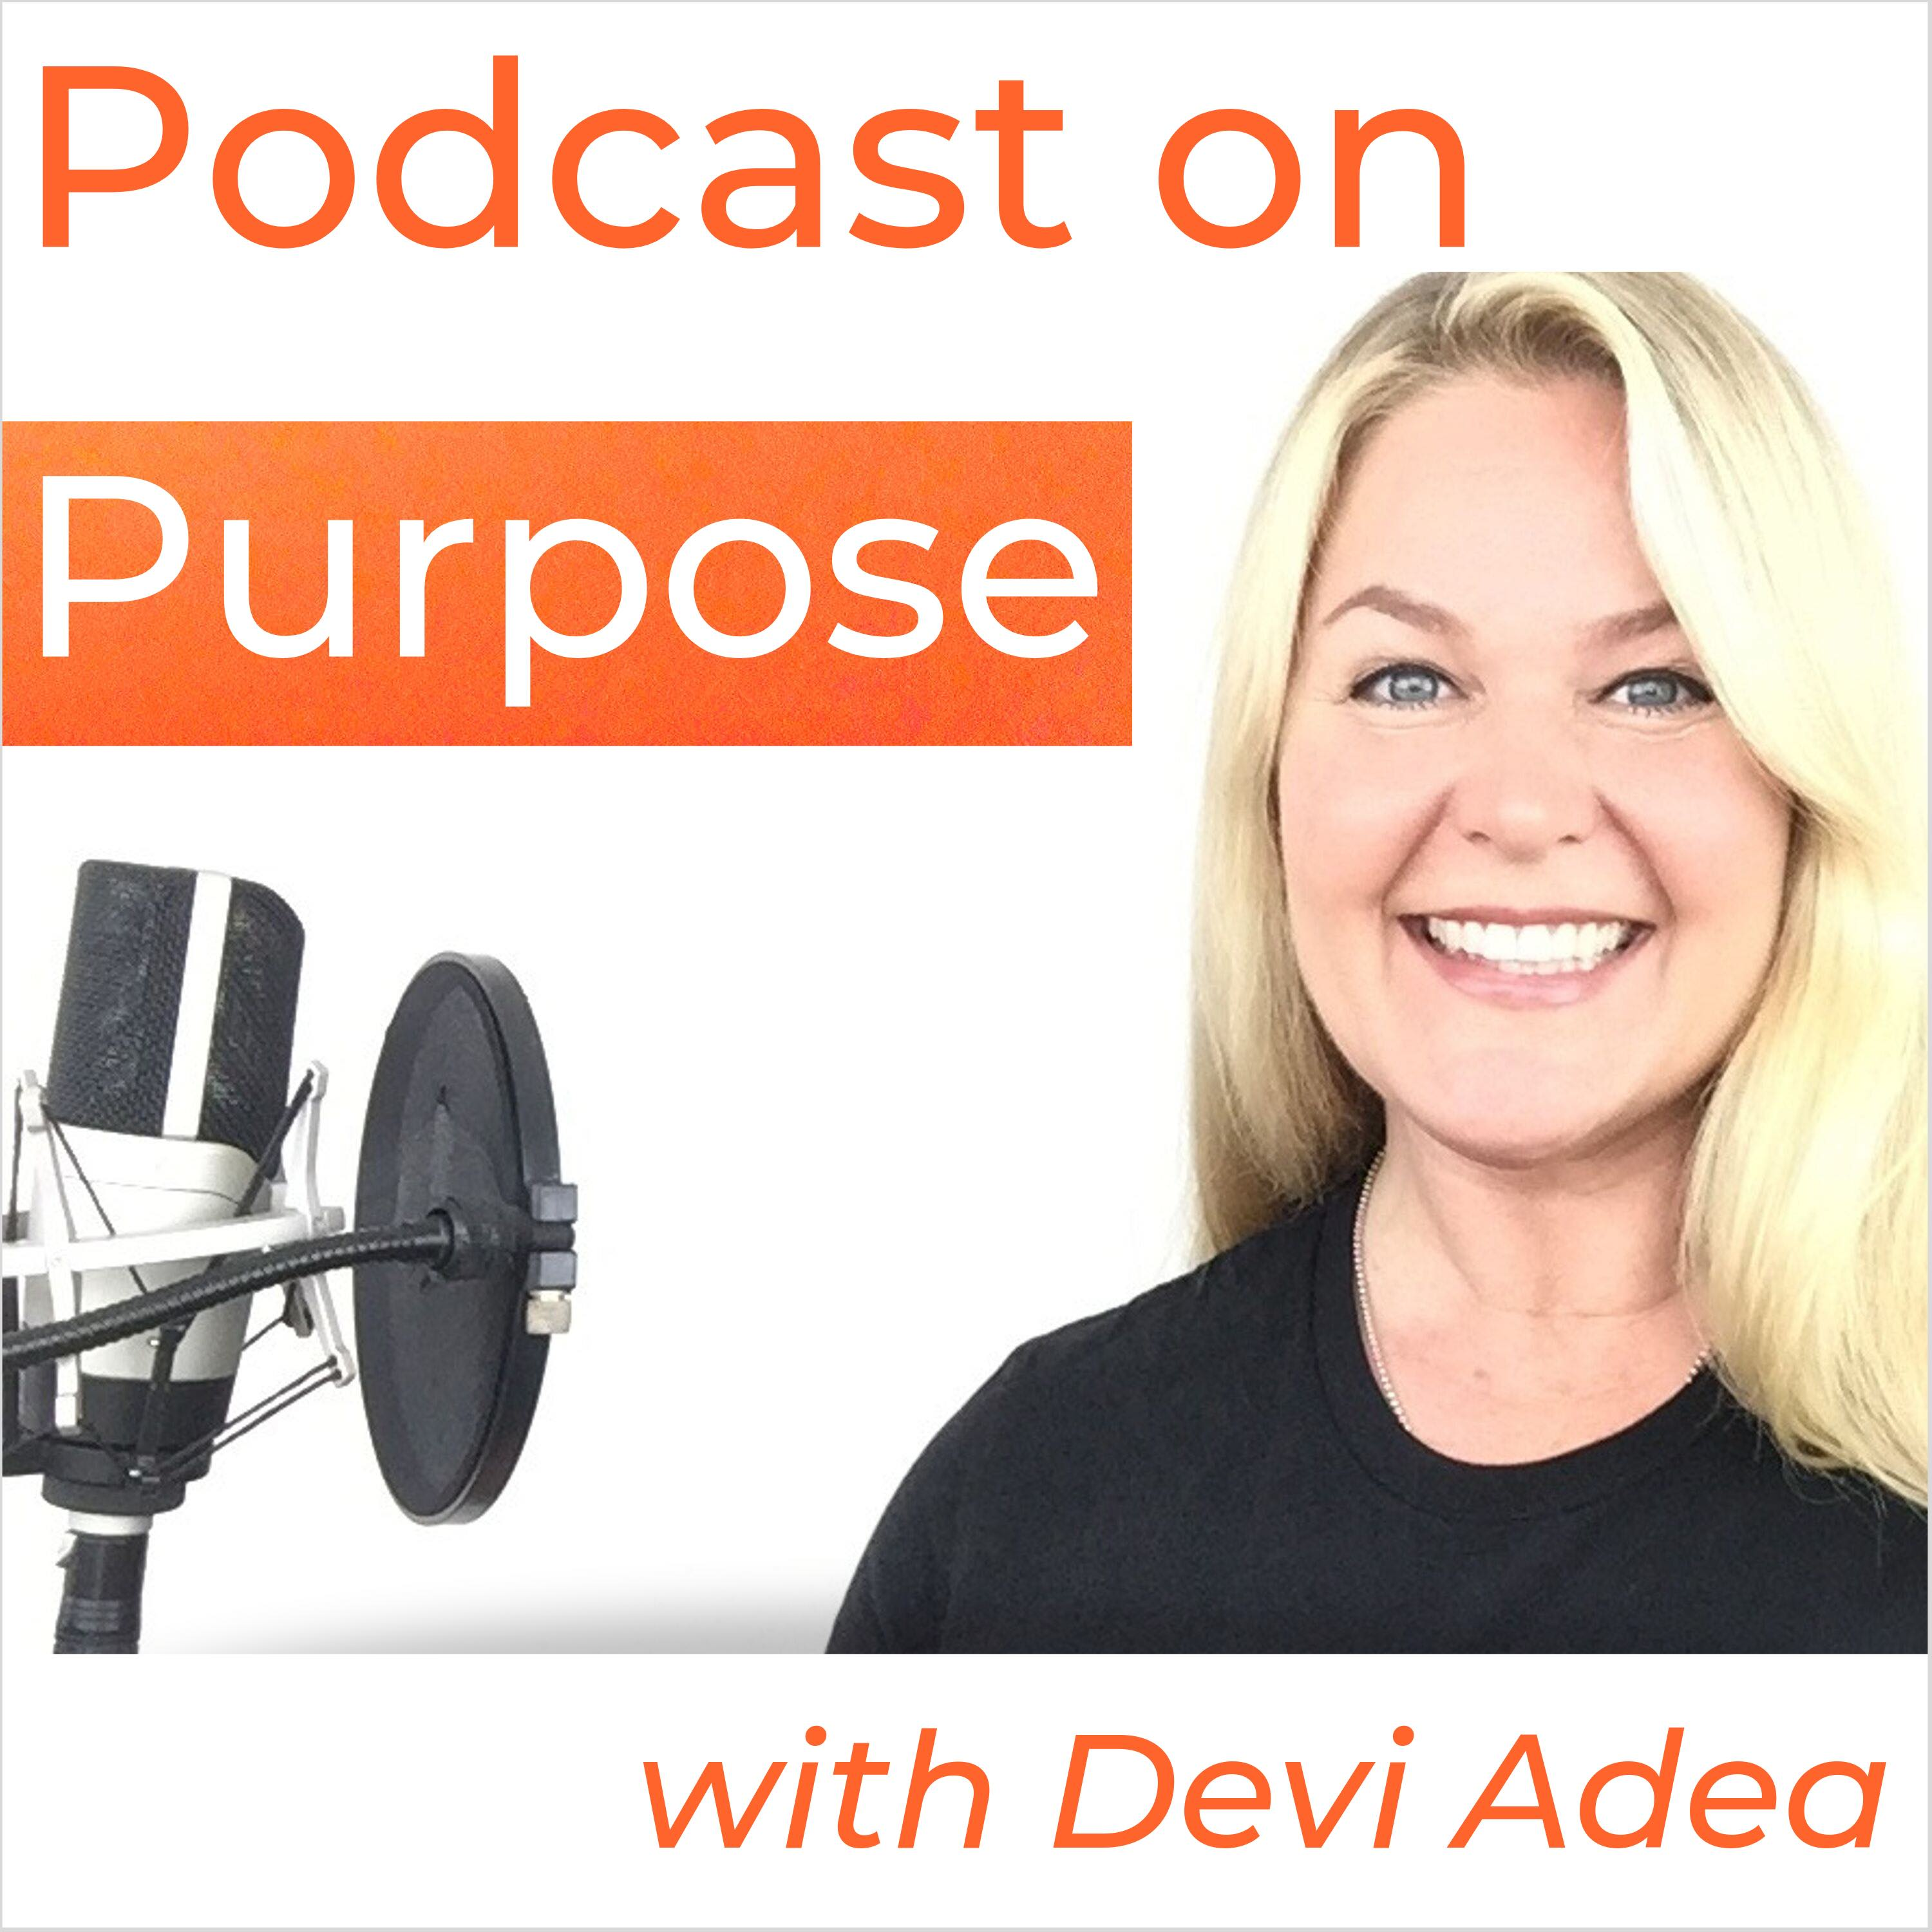 Podcast on Purpose show art